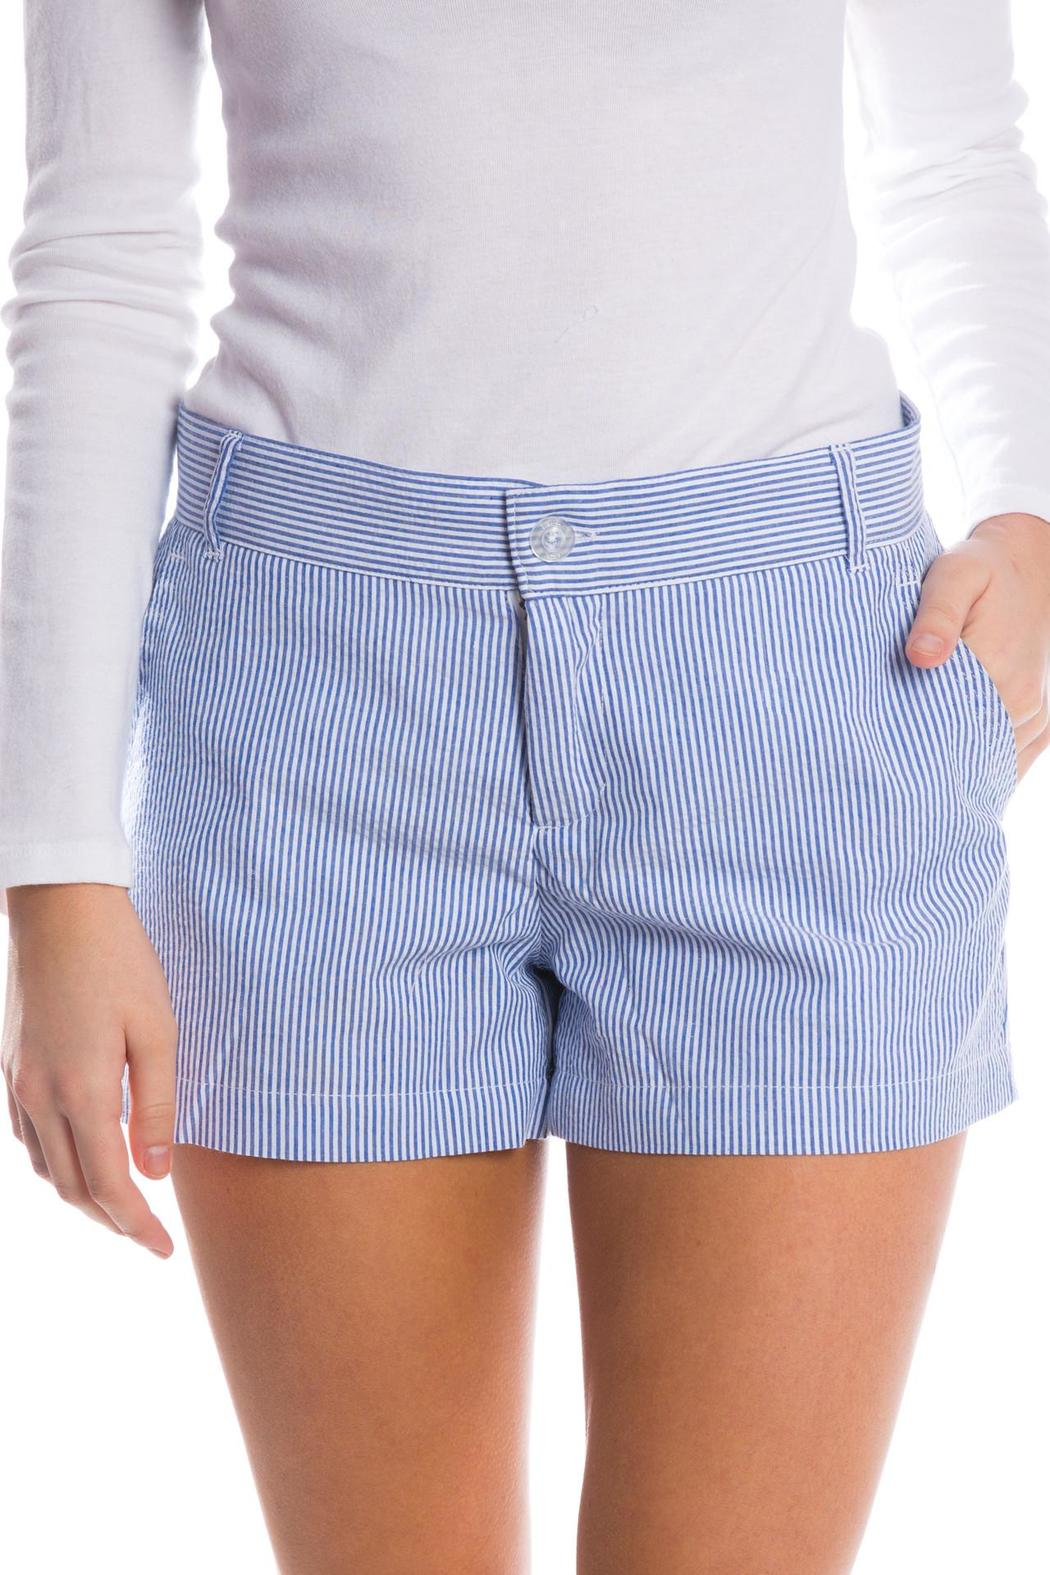 Lauren James Seersucker Poplin Shorts - Front Cropped Image